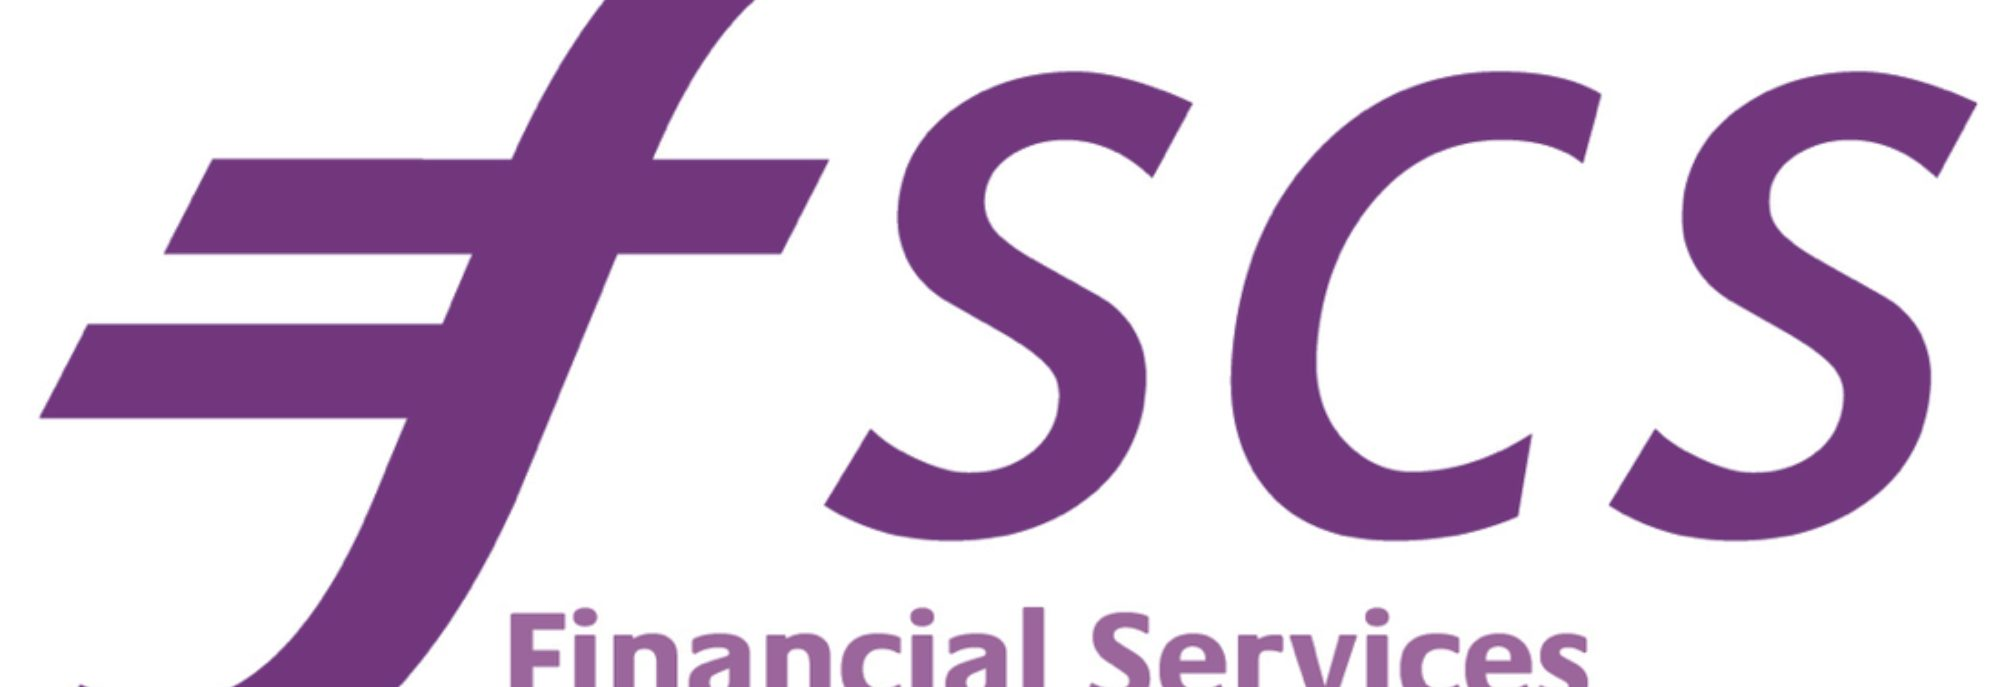 fscs protection on investment bonds